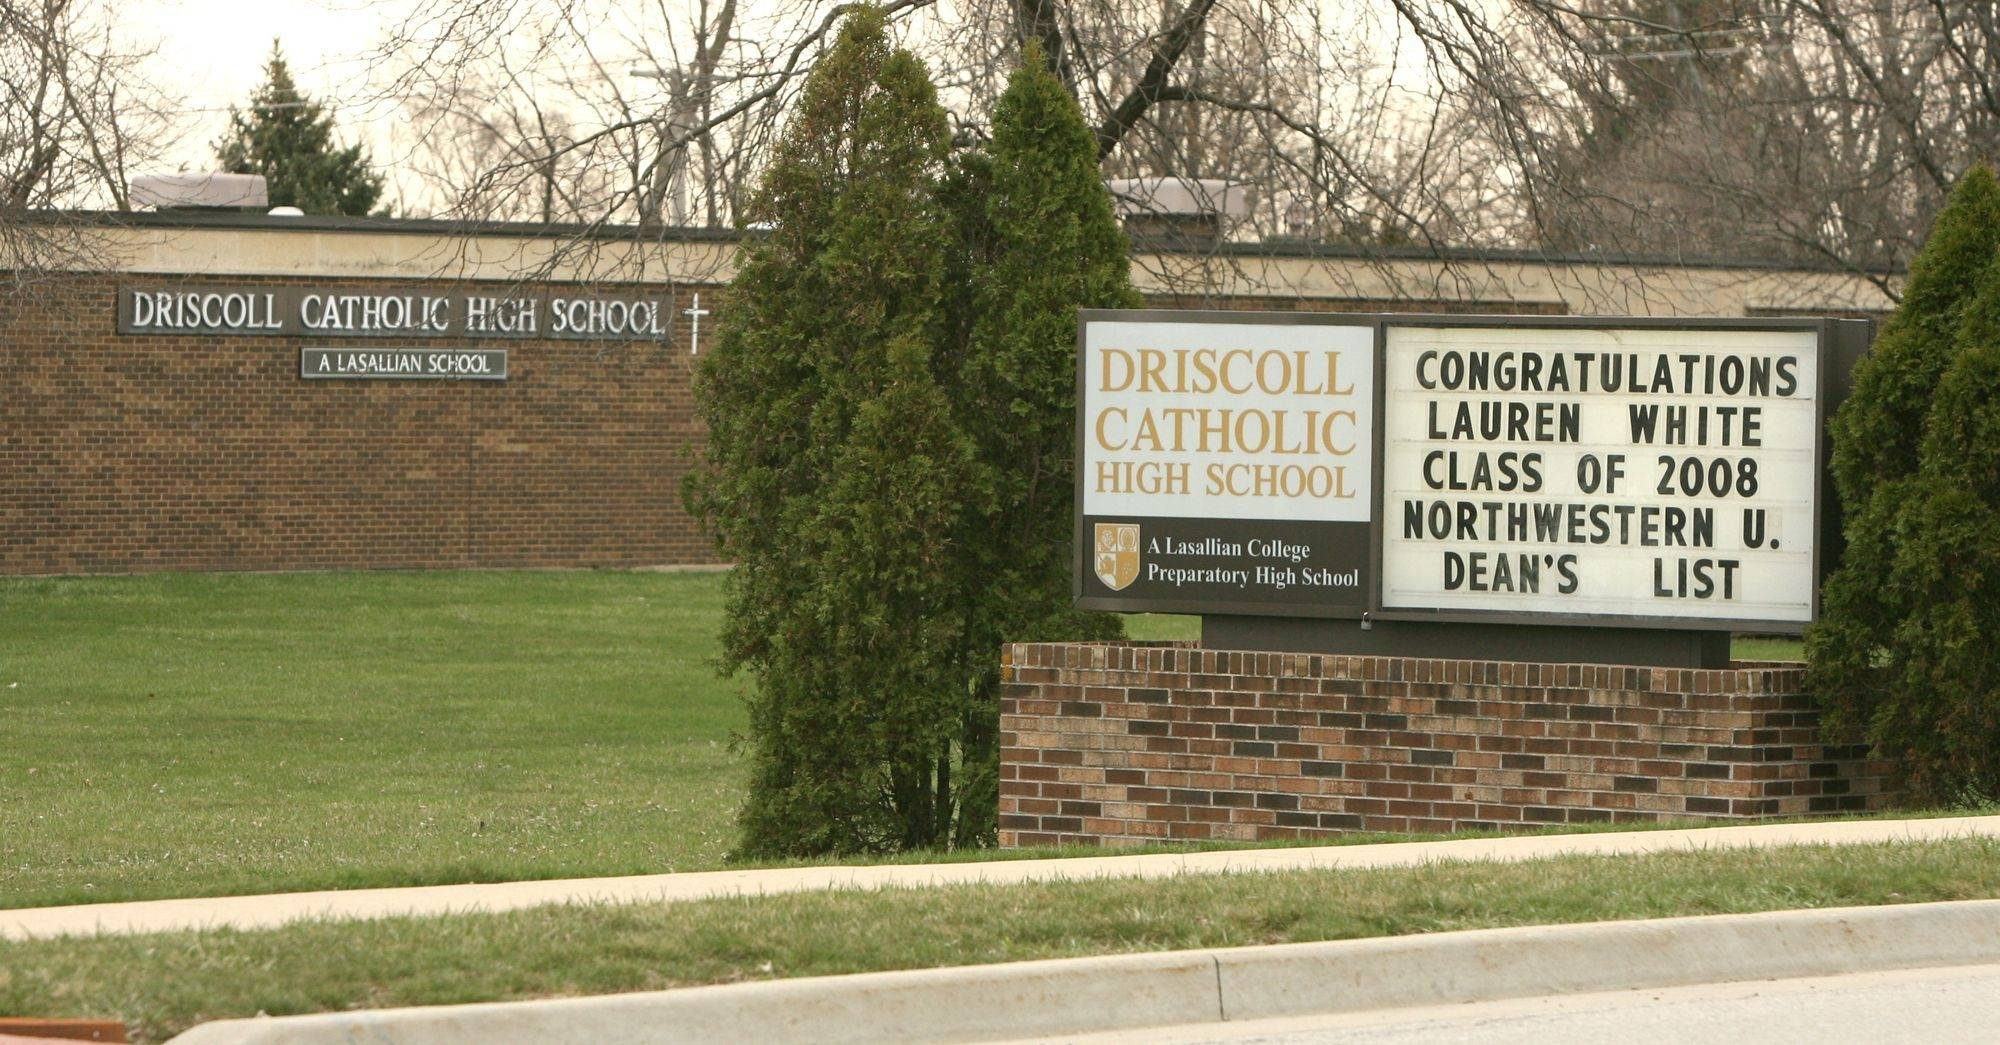 Addison officials may buy the former Driscoll Catholic High School site at 555 N. Lombard Road.